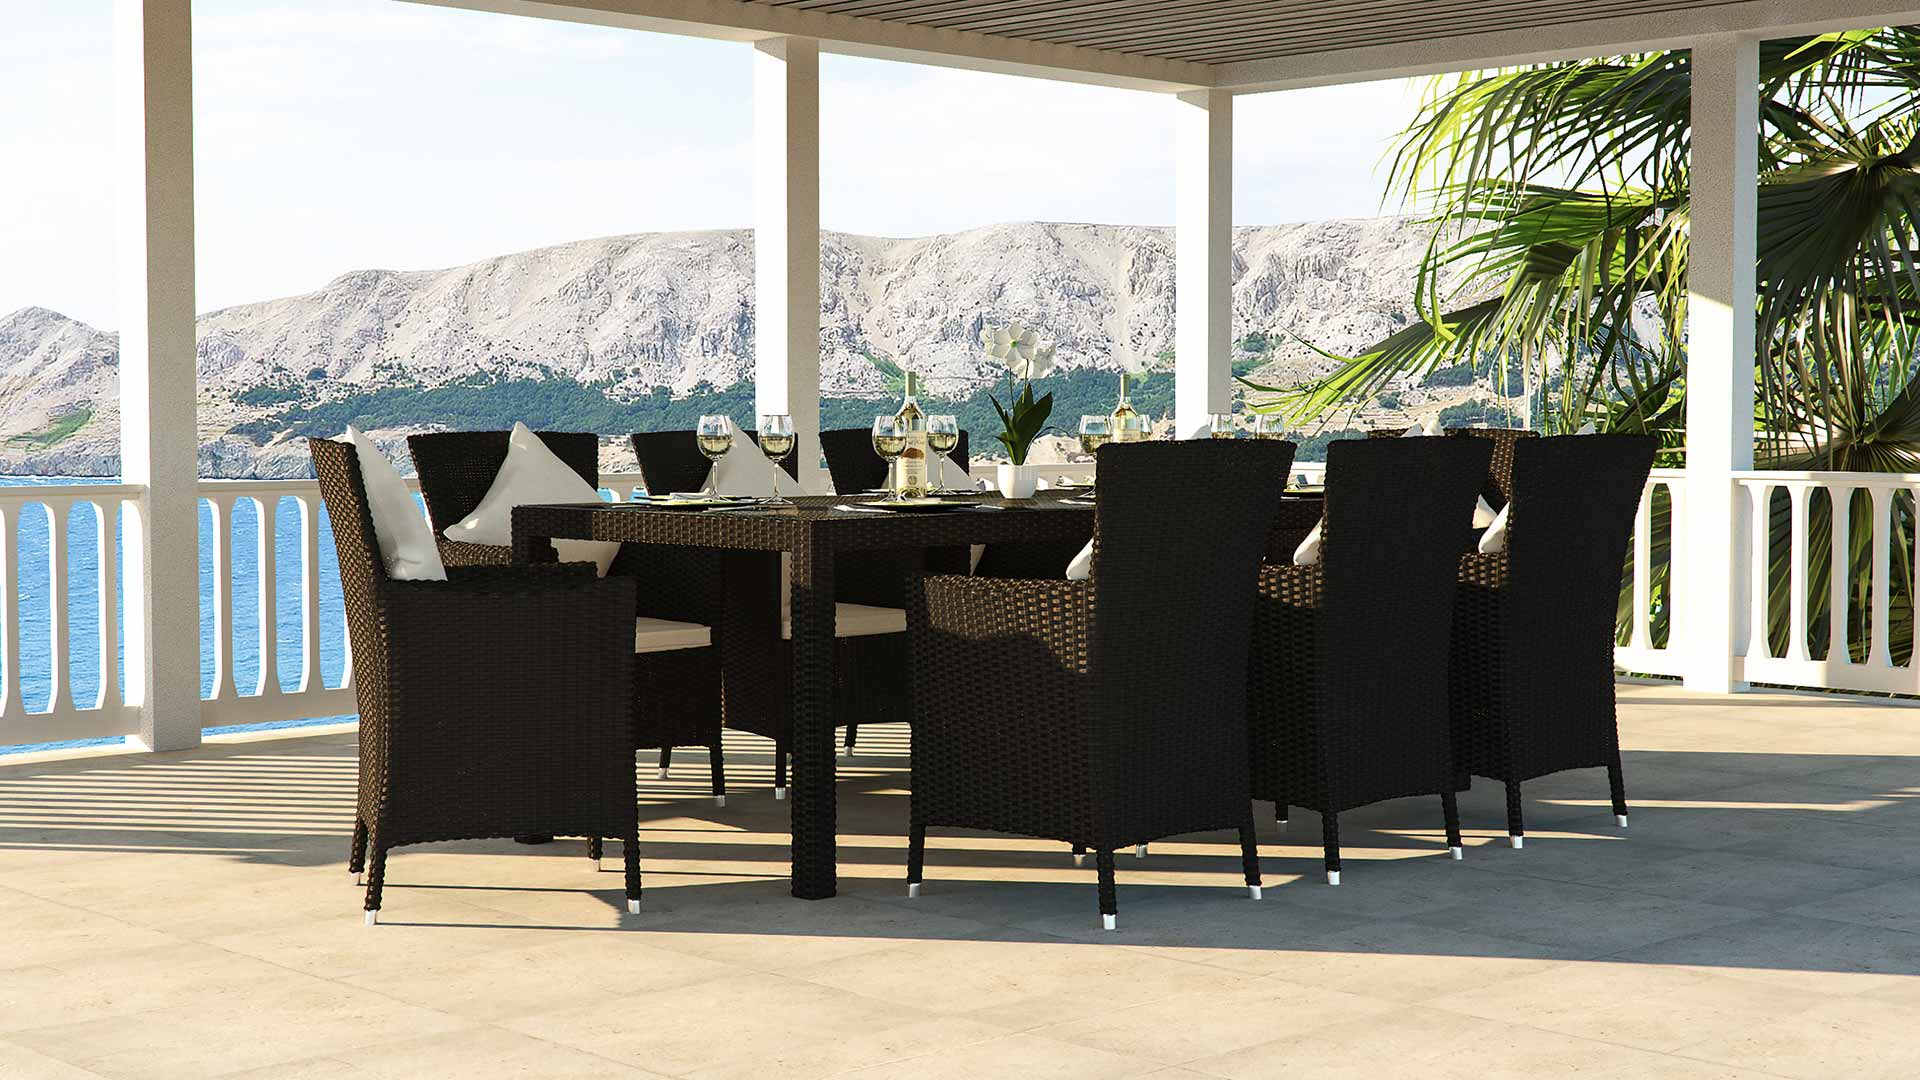 artelia terrassen esstisch set f r 8 personen aus polyrattan. Black Bedroom Furniture Sets. Home Design Ideas